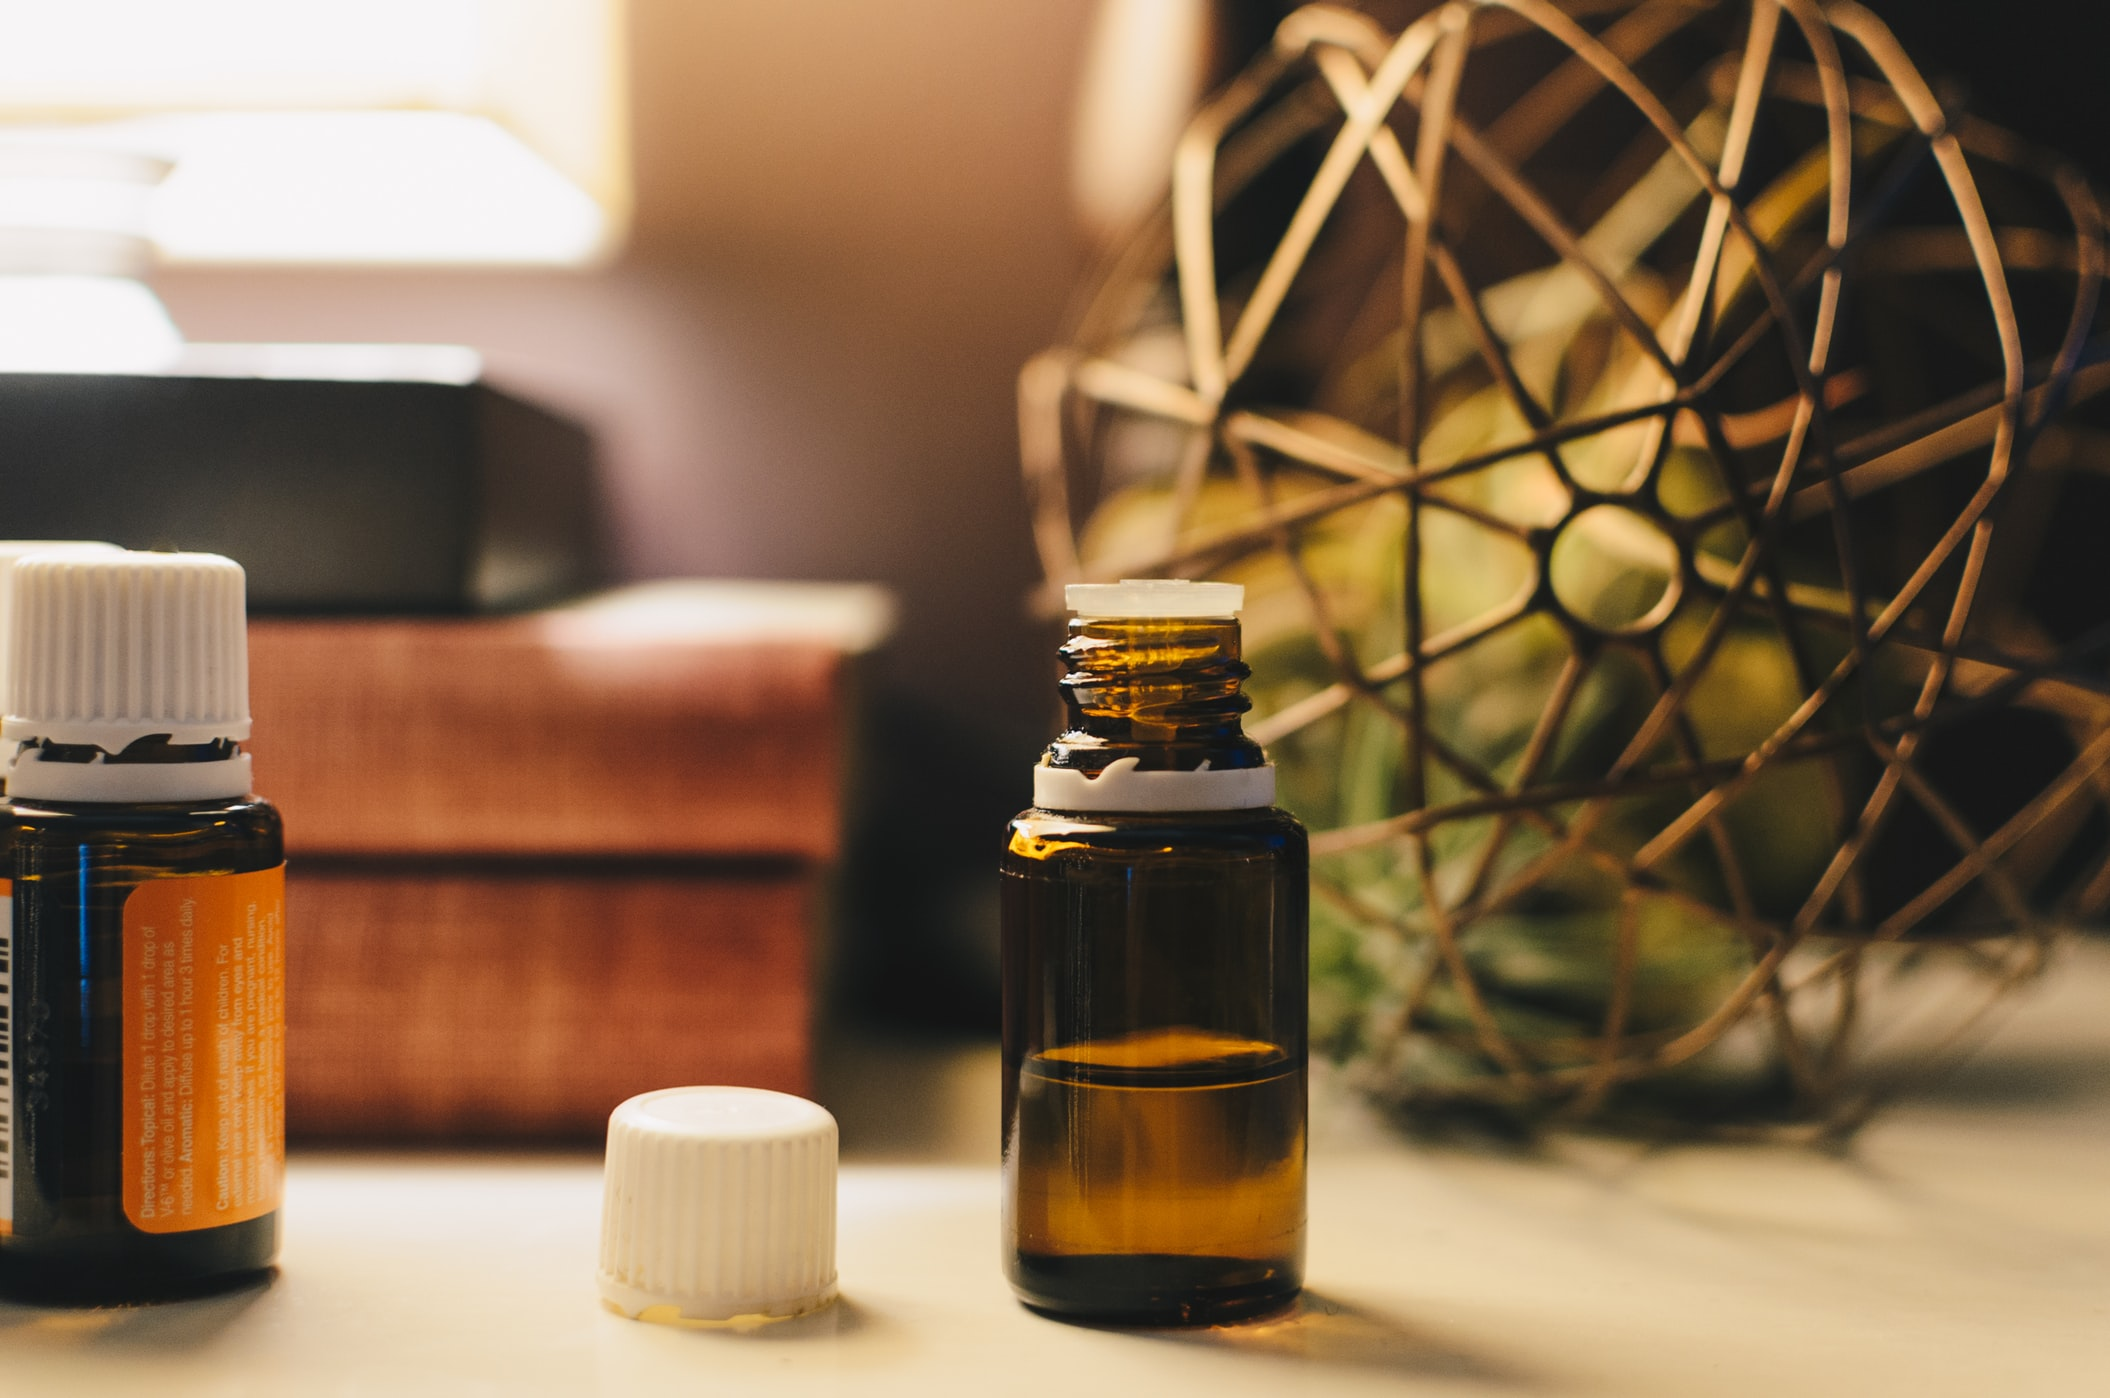 *Take your essential oil blend (10ml) home to continue the therapeutic benefits of Aromatherapy. The oil can be used as a body oil, bath & shower oil or massage oil.